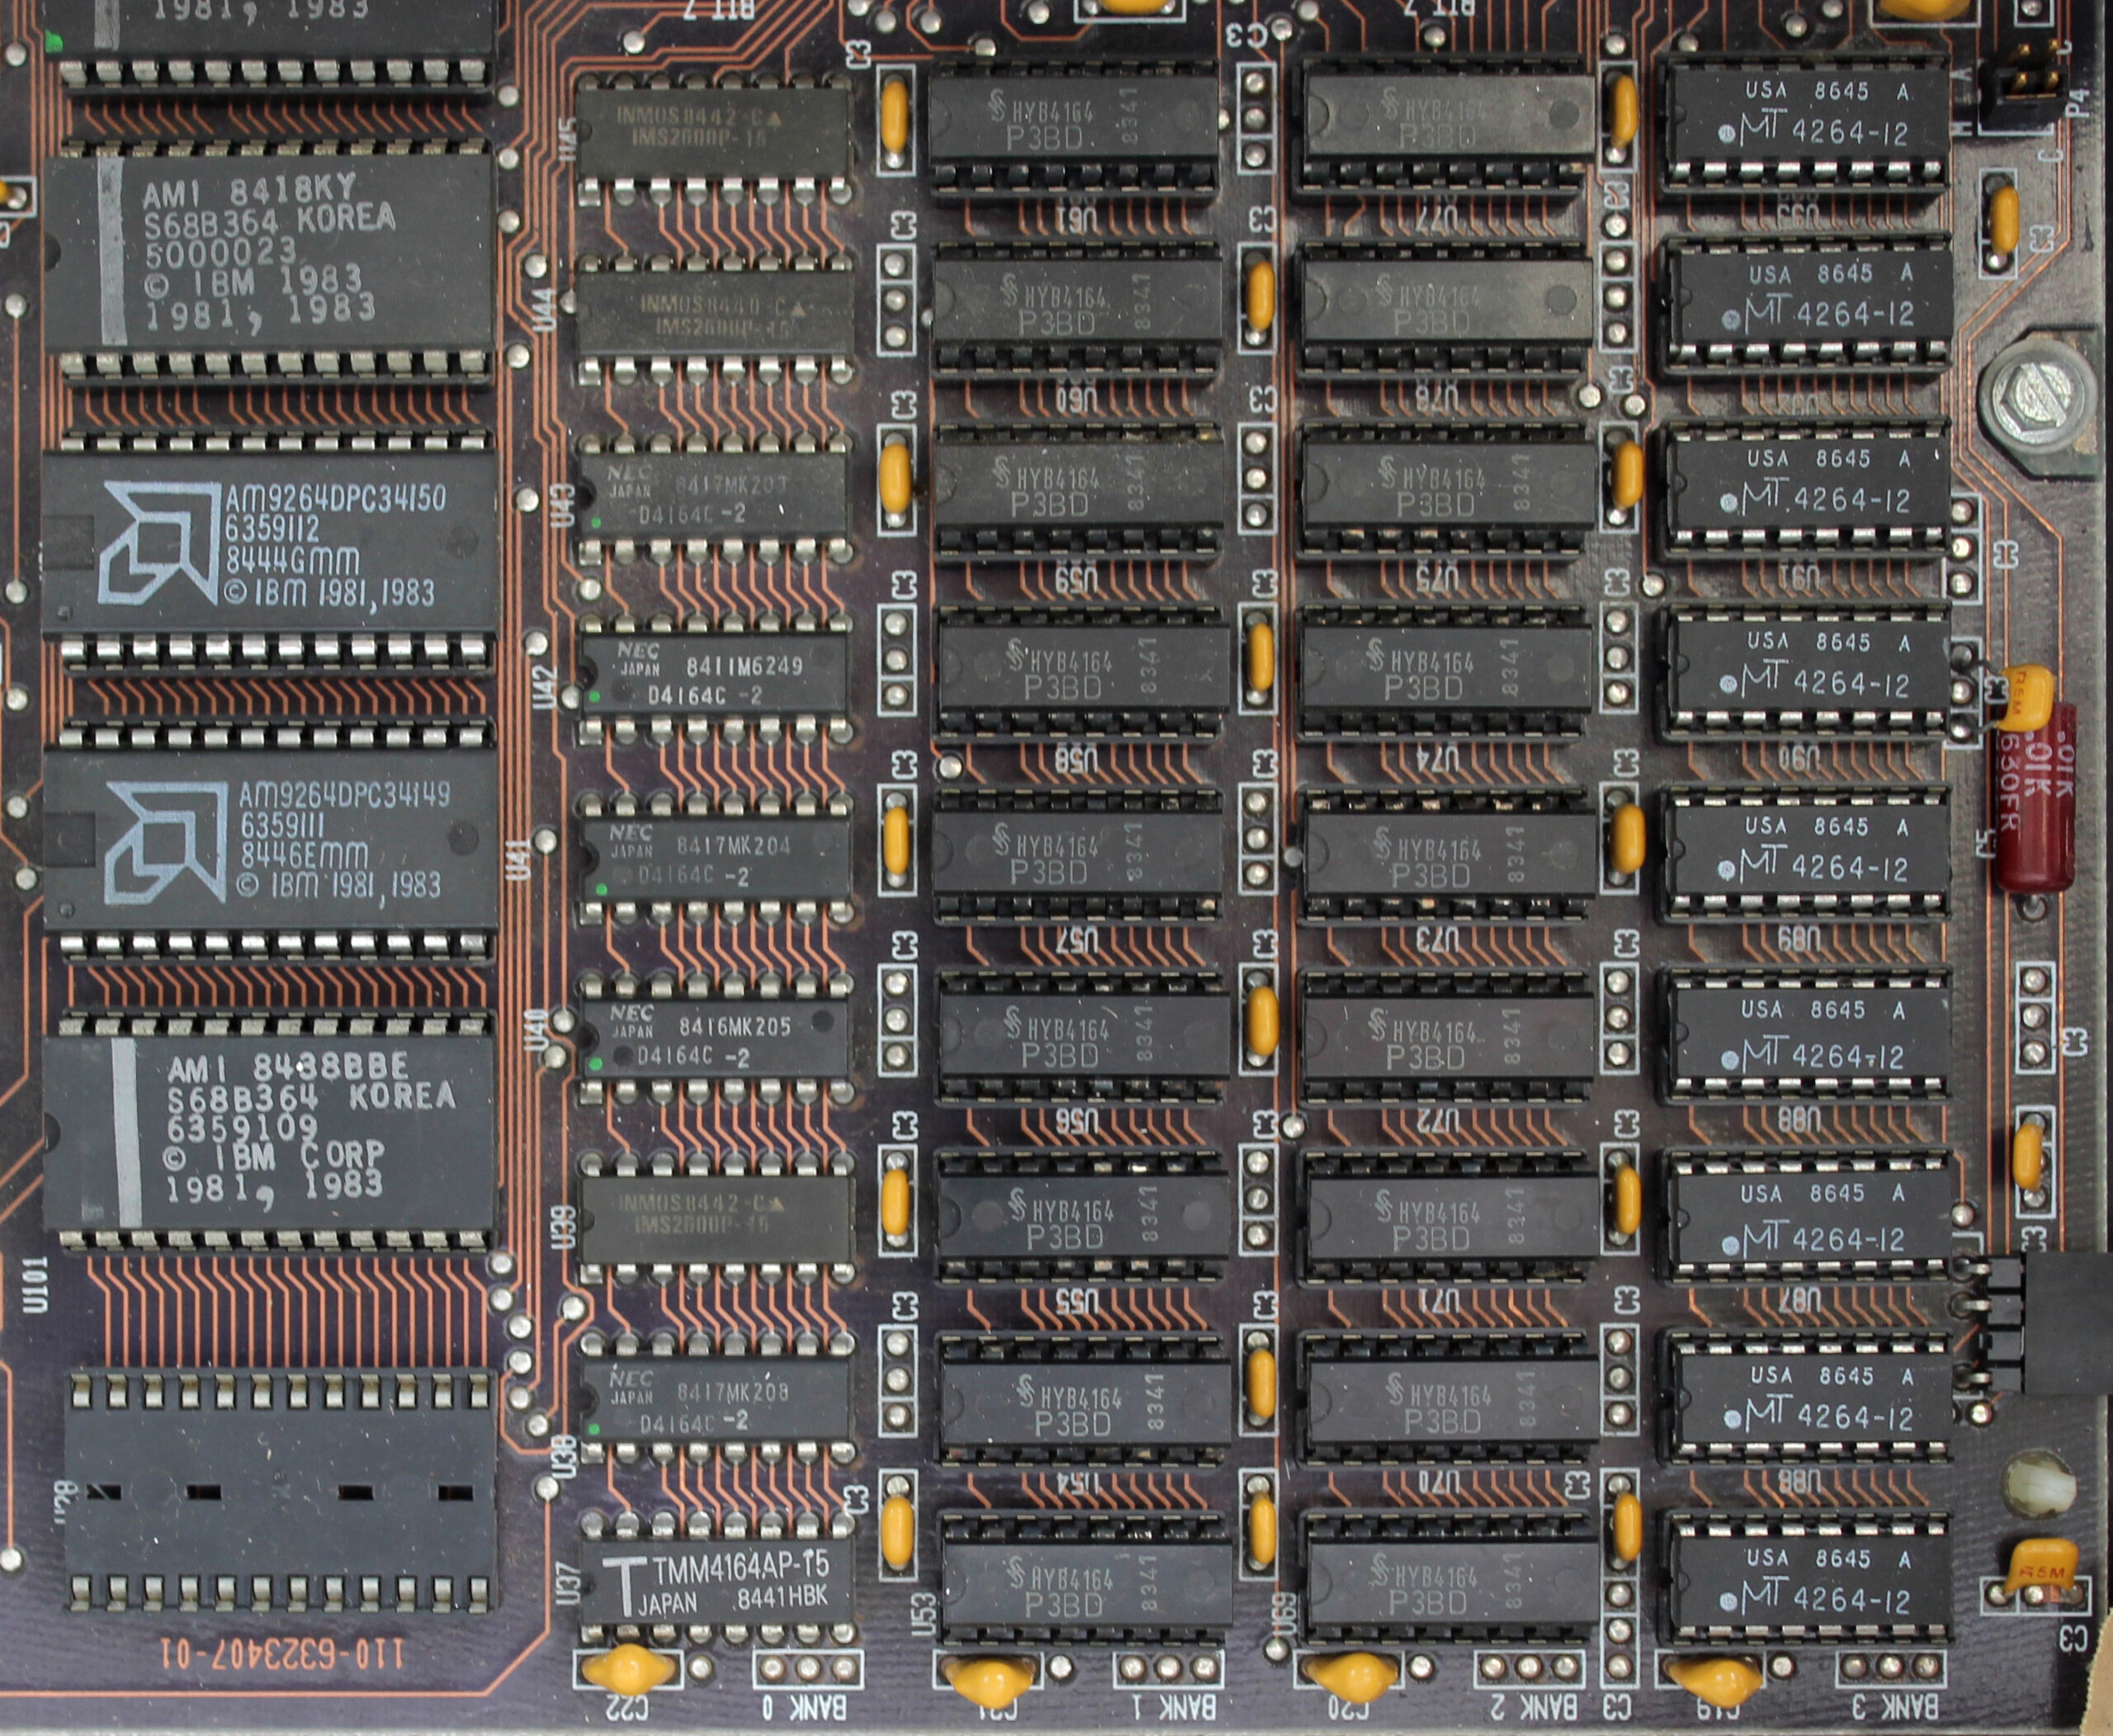 The memory is organised in four banks in the bottom right corner of the motherboard – in this case there are four 64KB banks, adding up to a total of 256KB